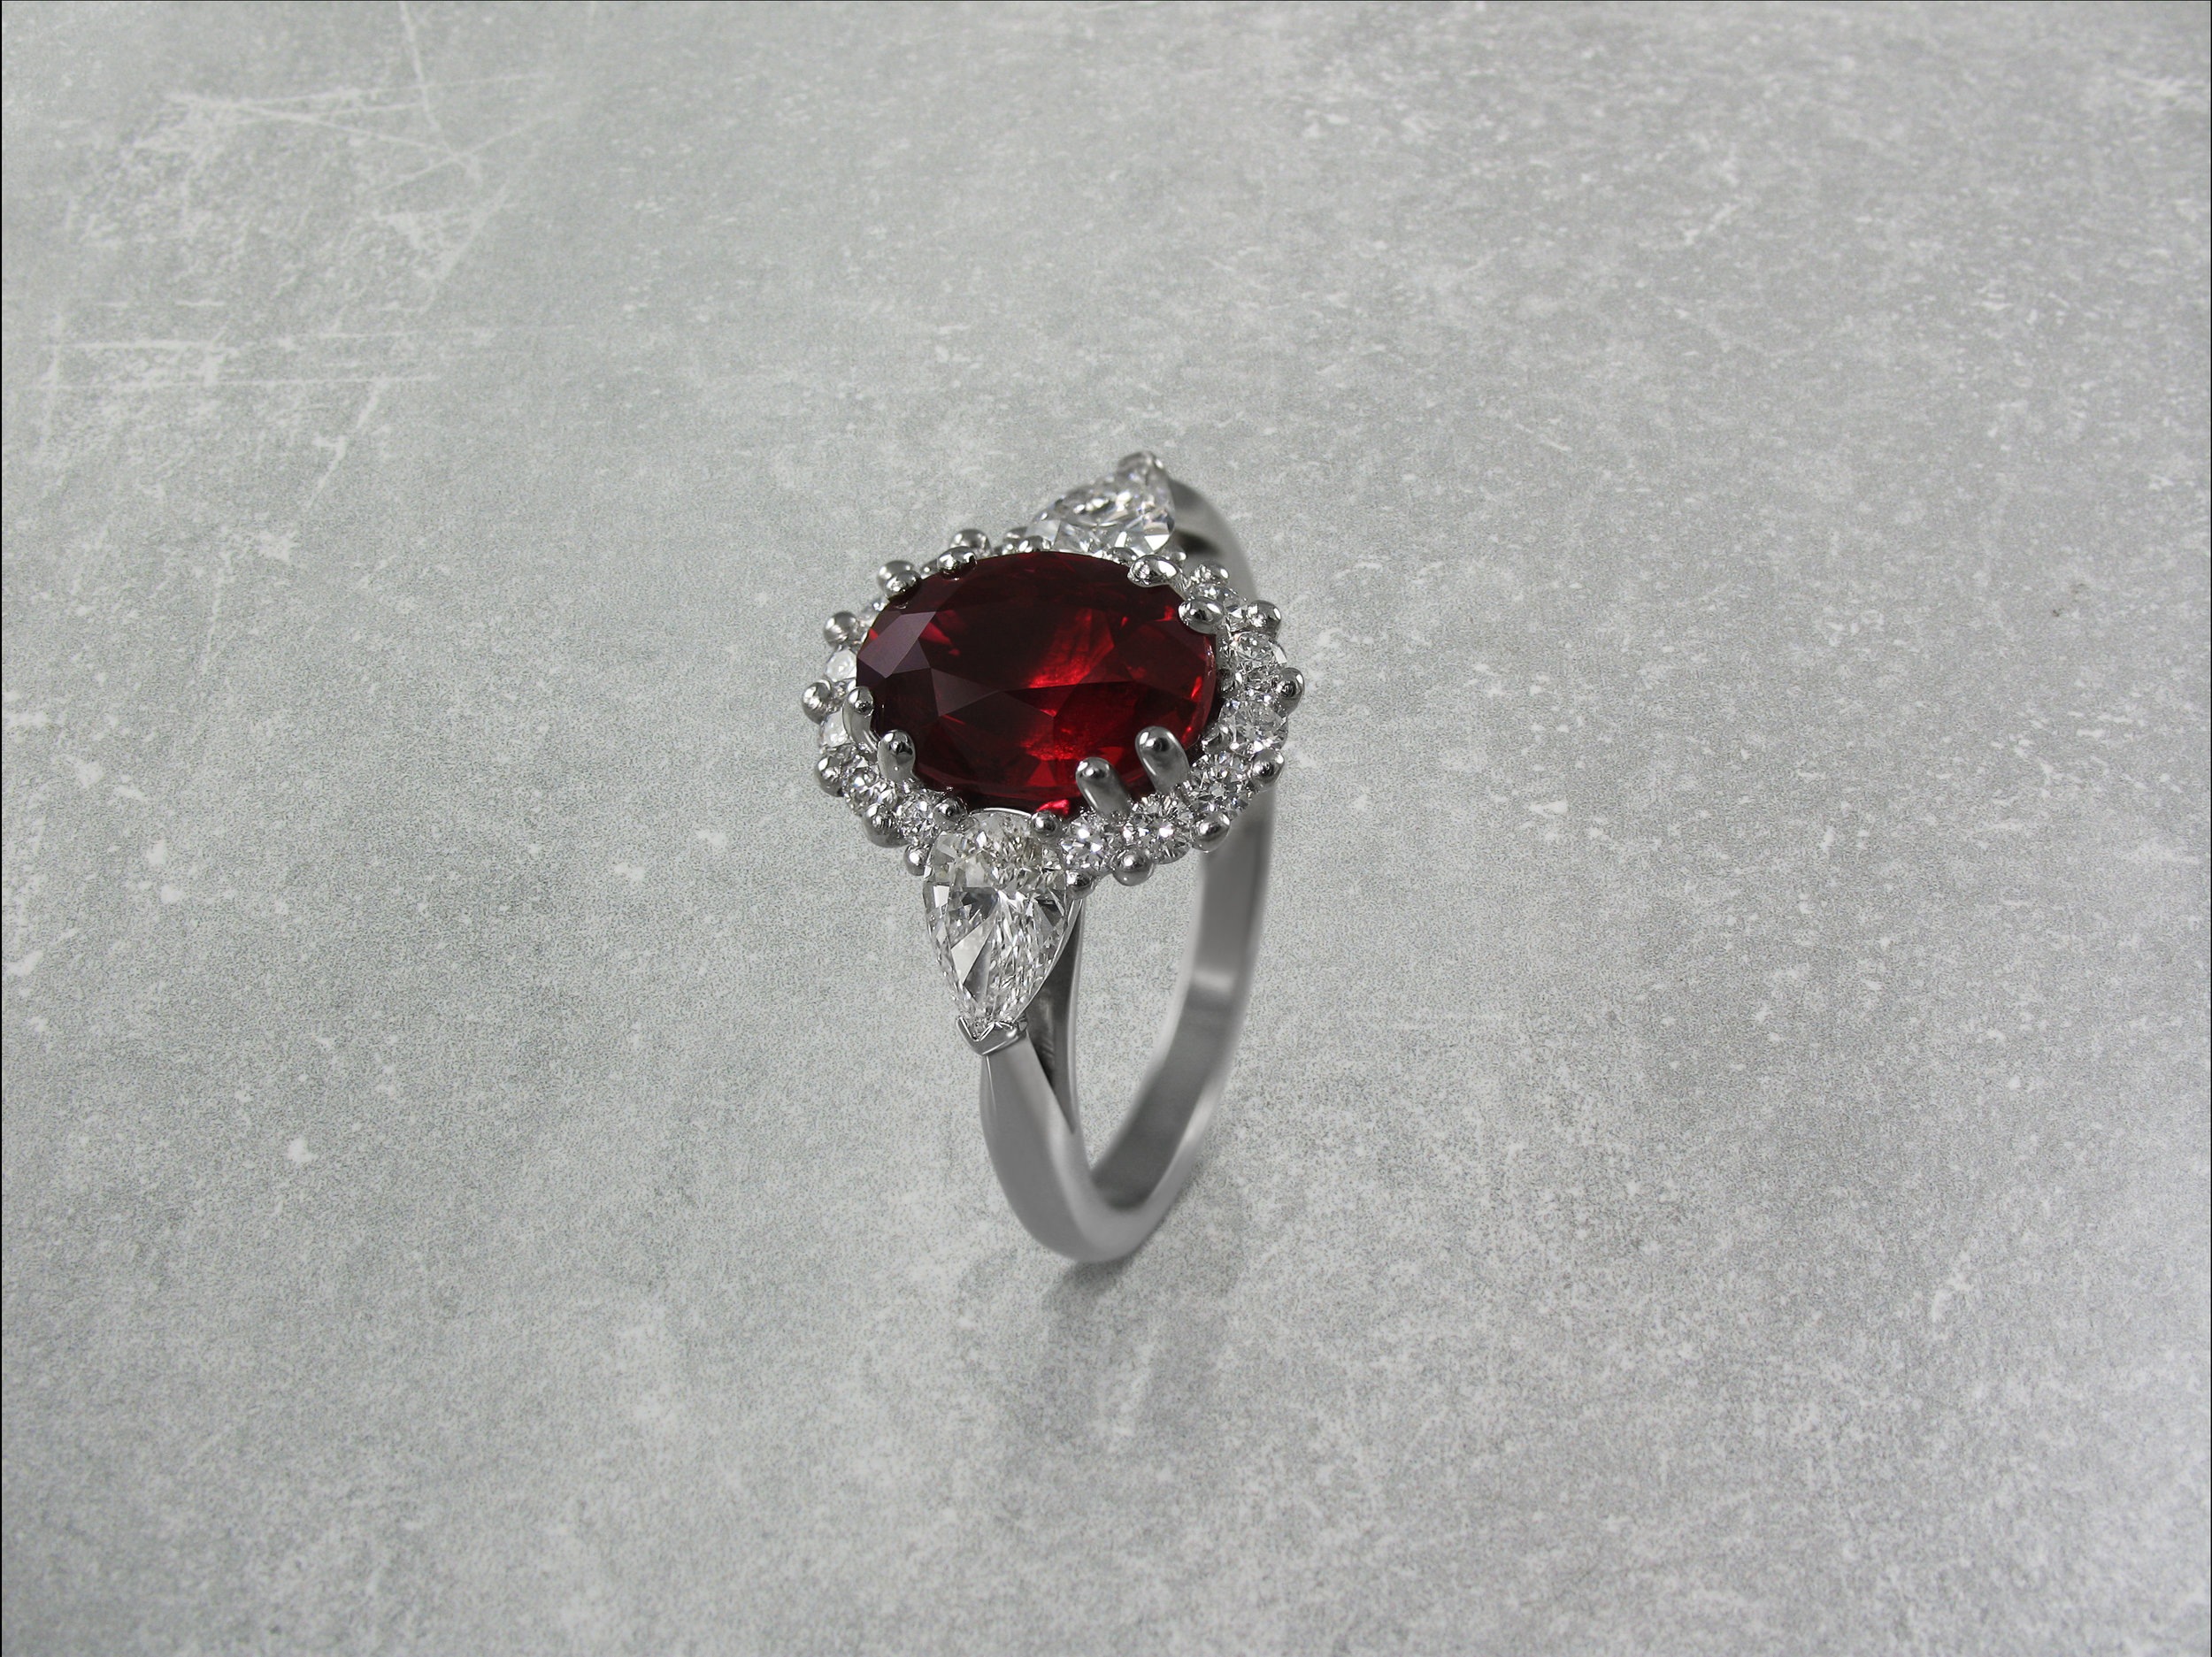 Oval ruby and diamond cluster engagement ring with pear shaped diamond shoulders